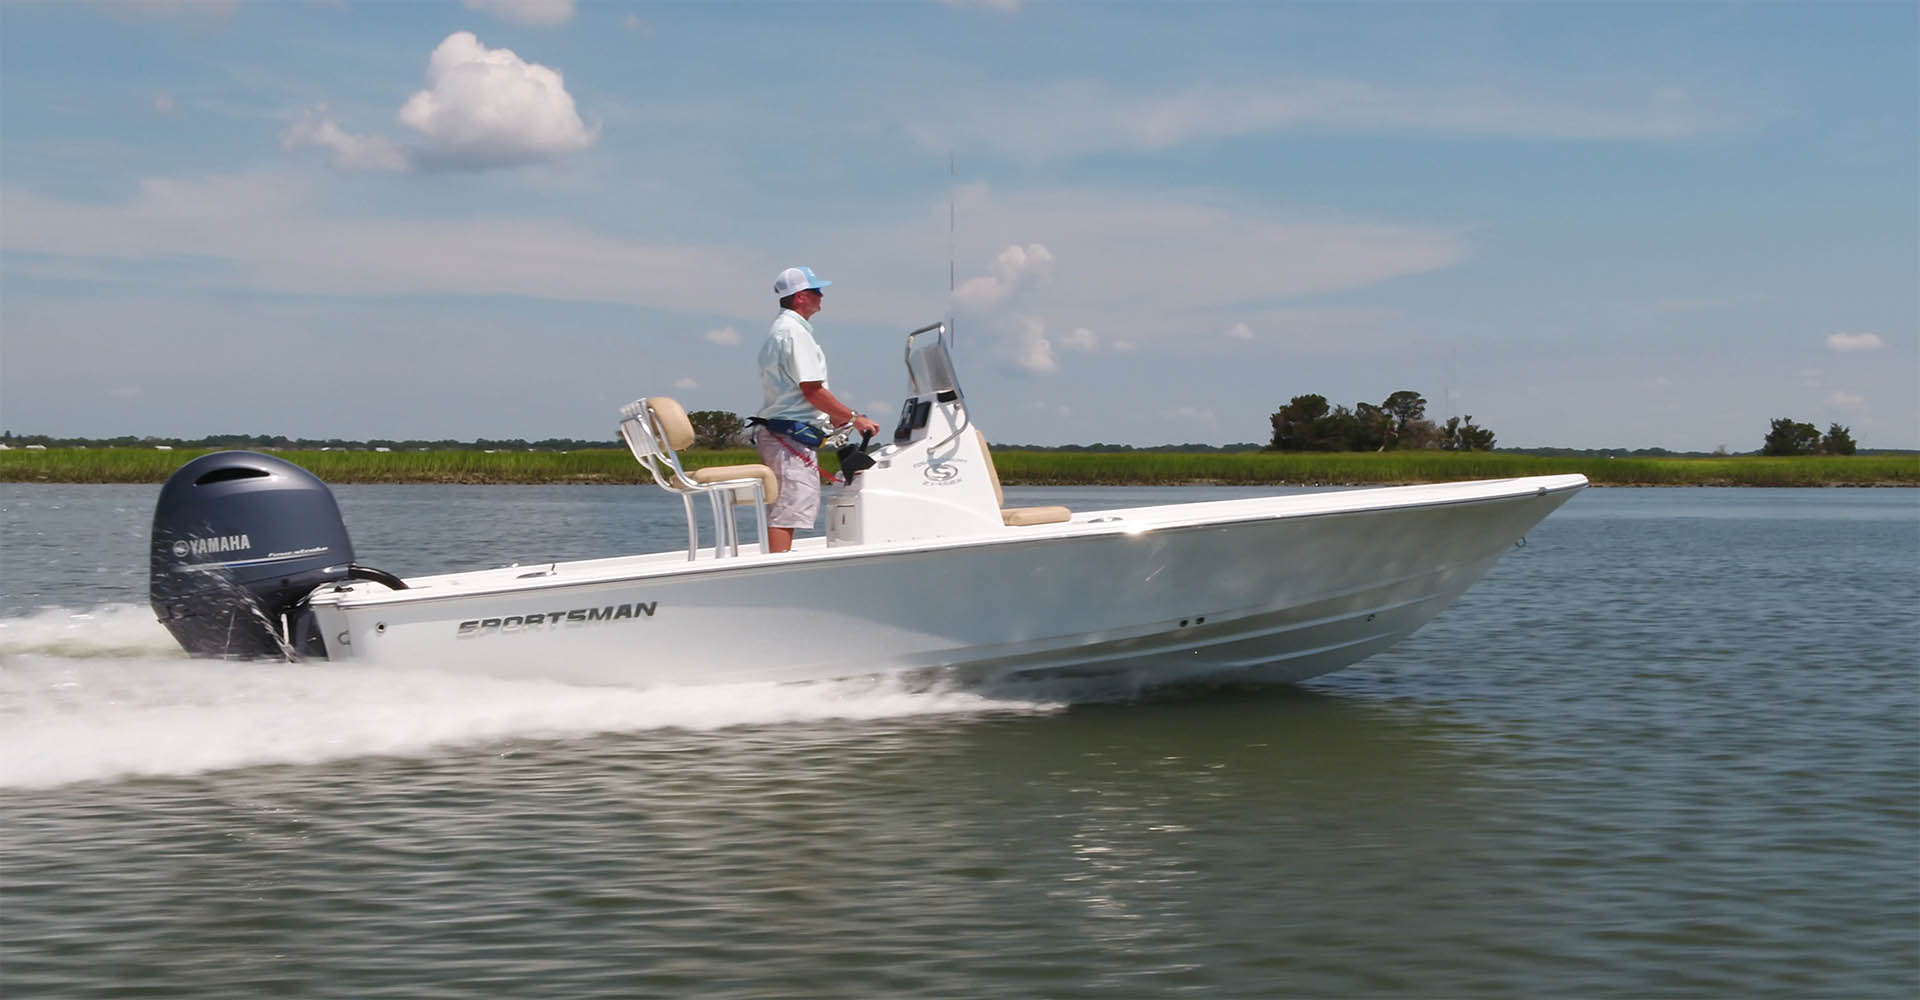 Main image of the Tournament 214 SBX Bay Boat.